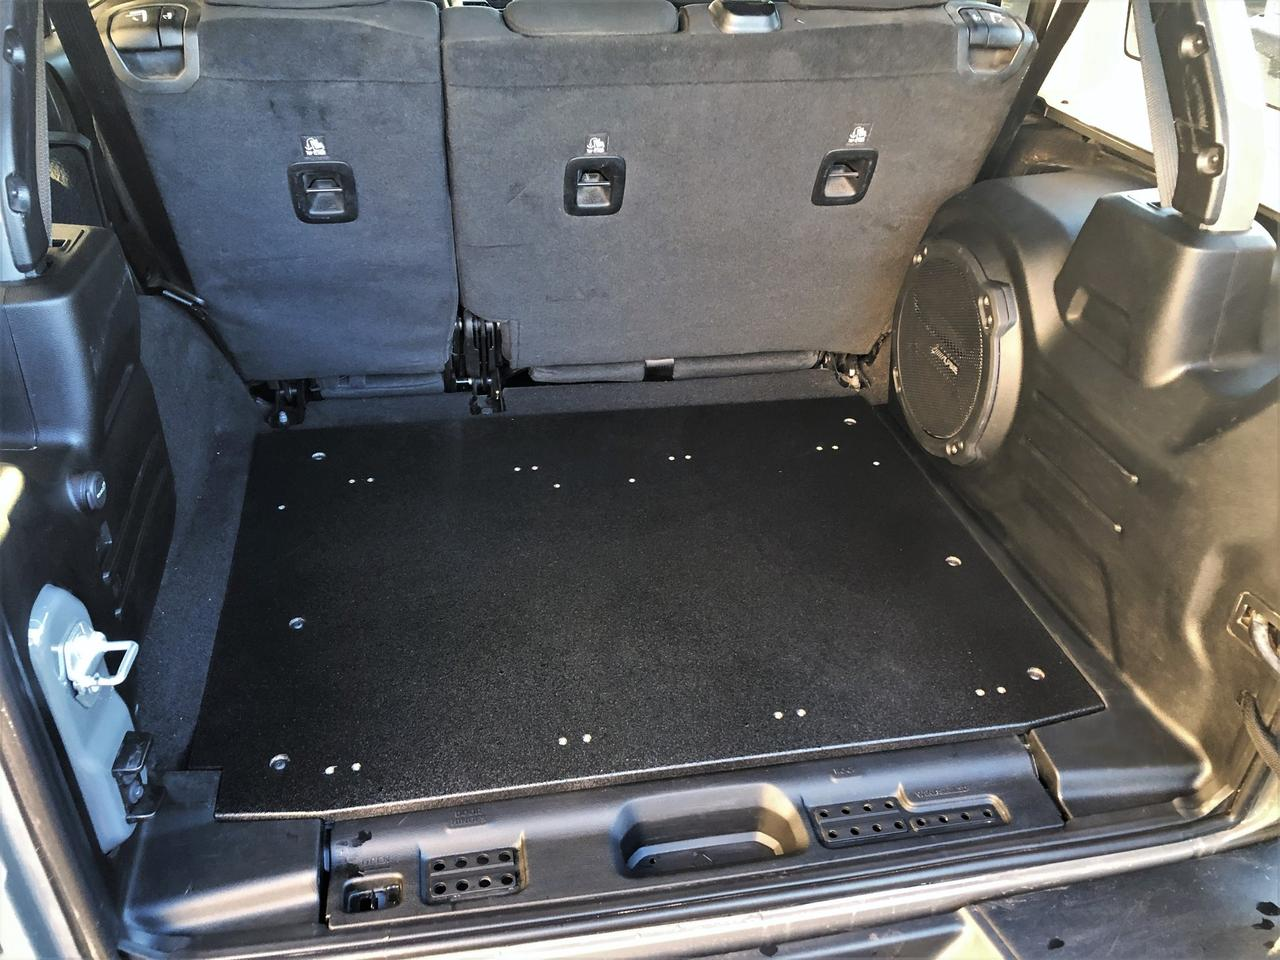 DirtBox has designed its initial base plates specifically for Wrangler JKU and JLU models; additional vehicle models will be supported in the future